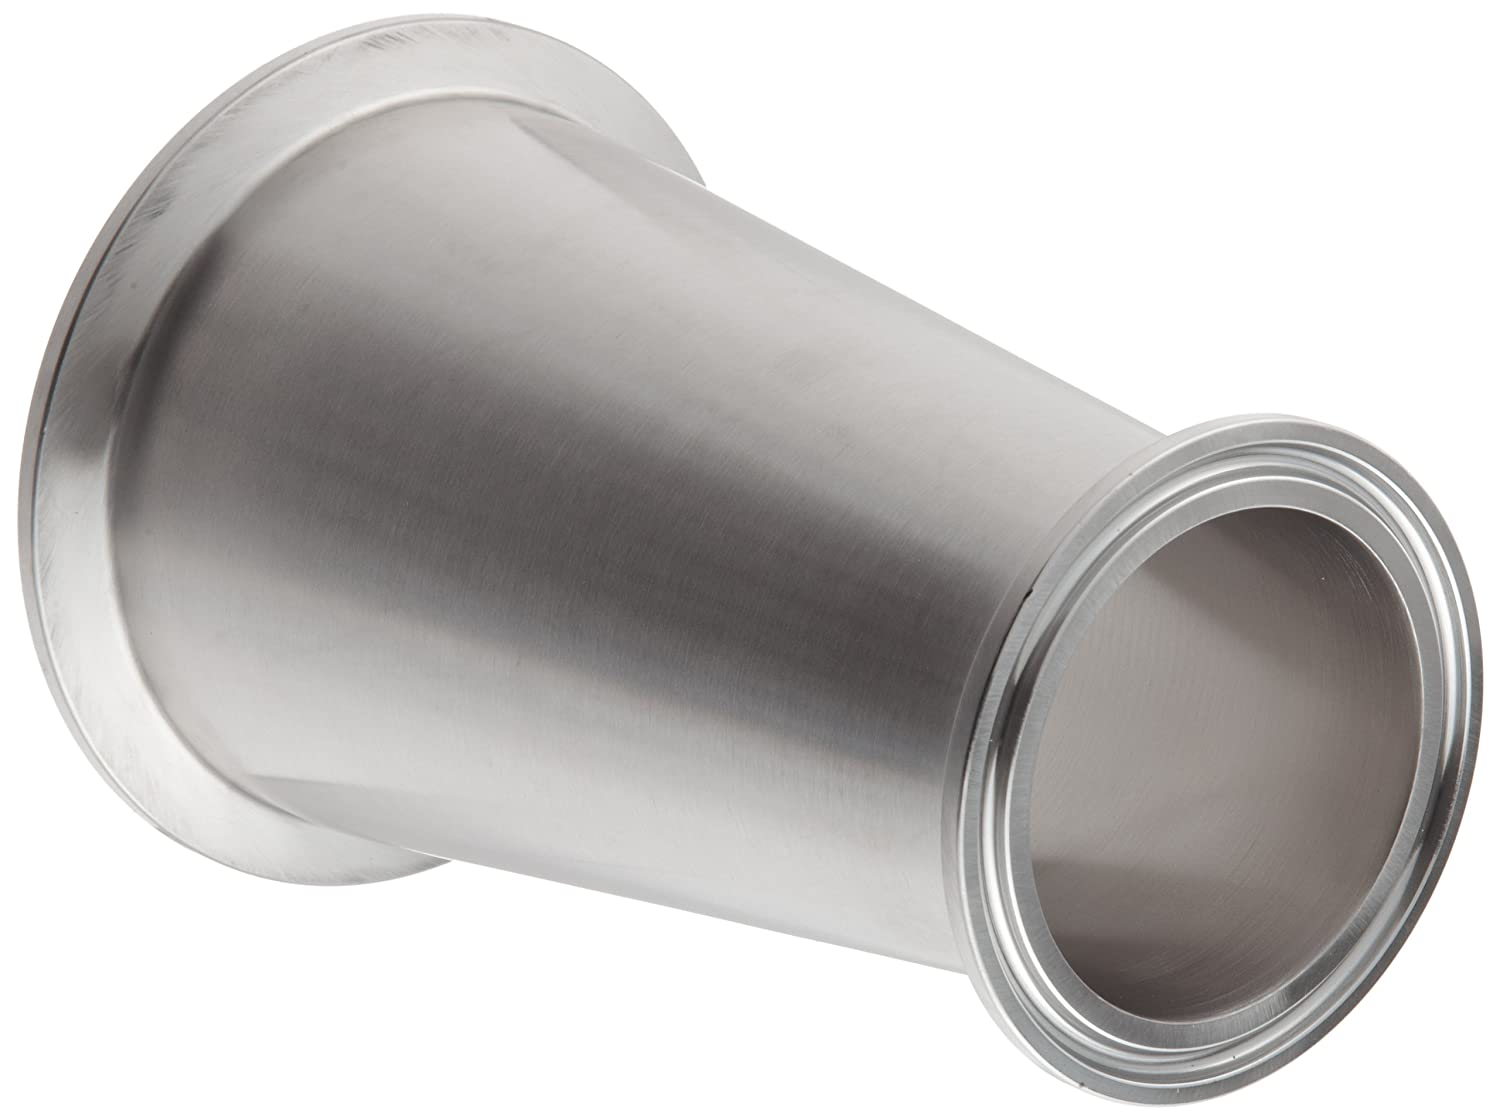 2-1//2 Tube OD x 1-1//2 Tube OD Dixon B3114MP-G250150 Stainless Steel 304 Sanitary Fitting Clamp Concentric Red Fiberglassucer